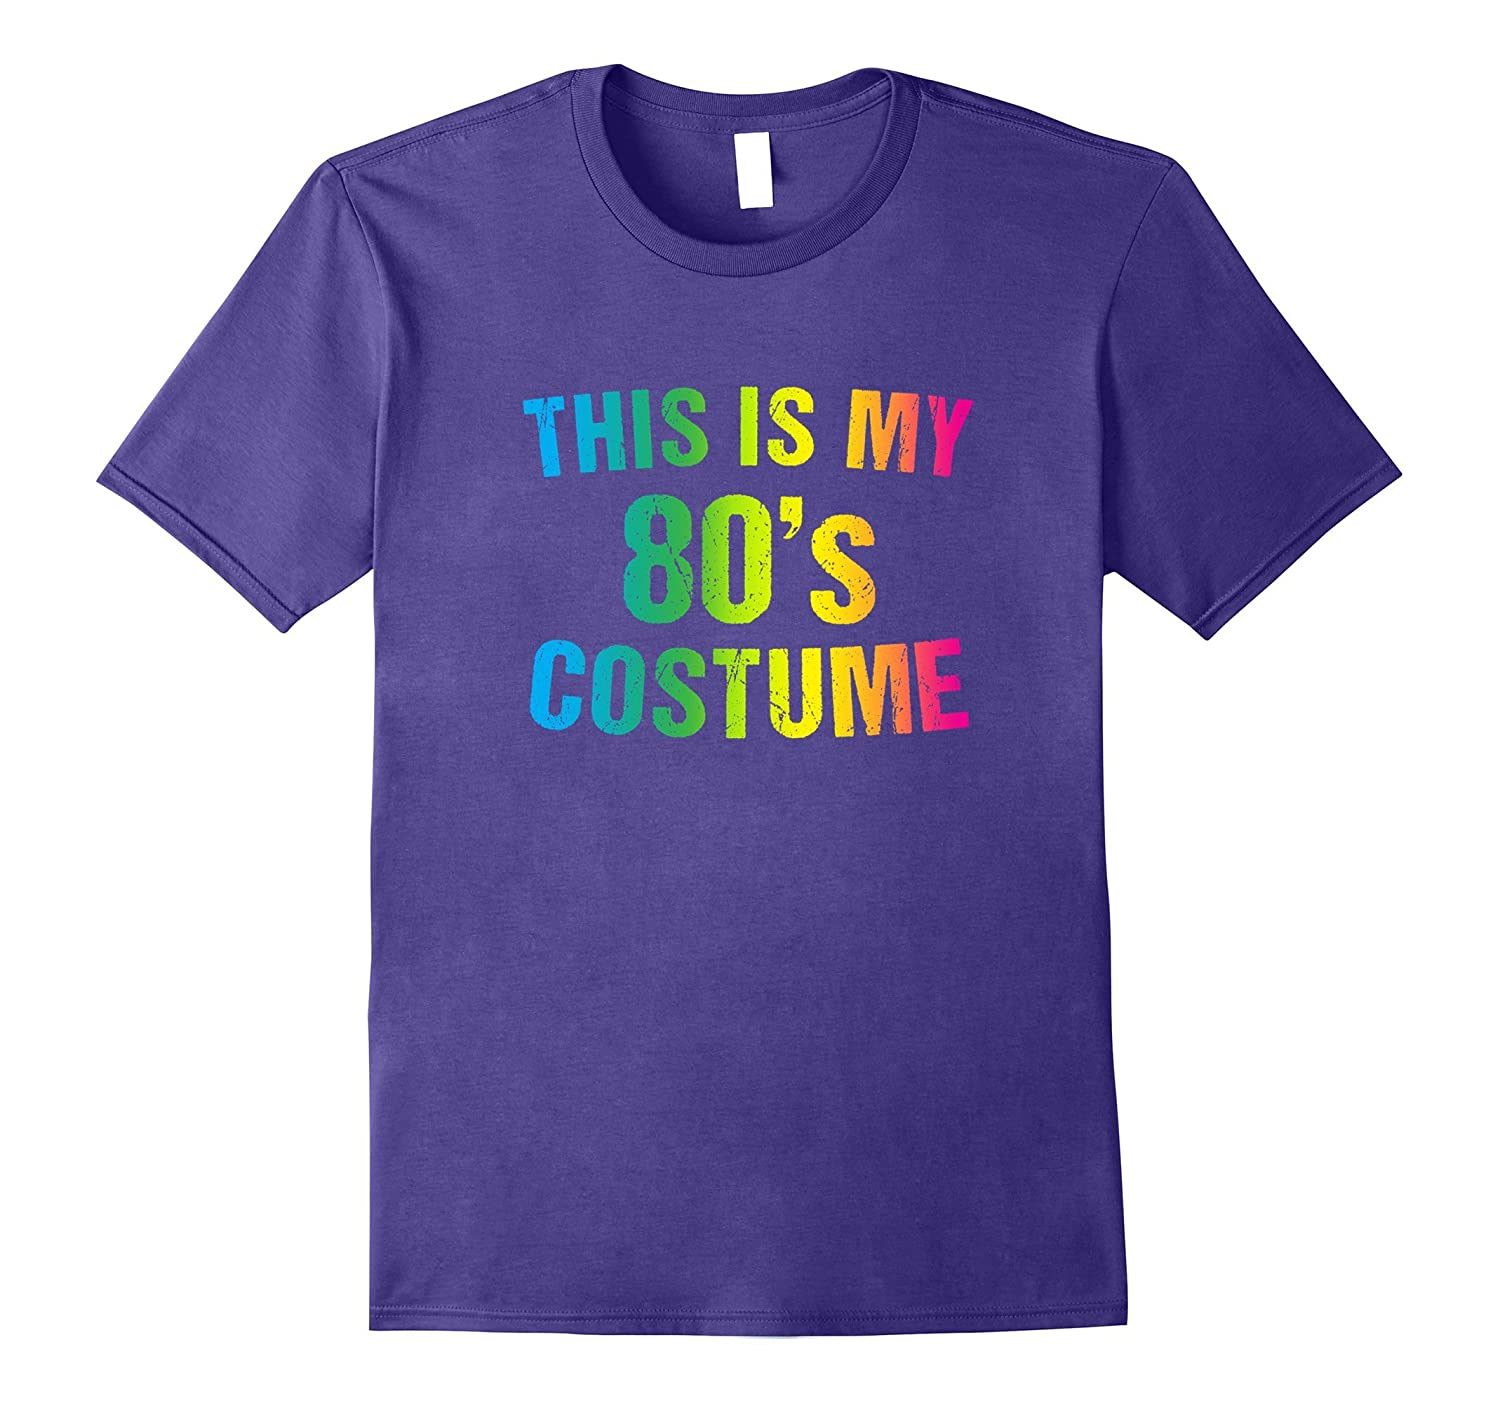 80s Costume Halloween Shirt Retro 1980s for Men Women Girls-TJ